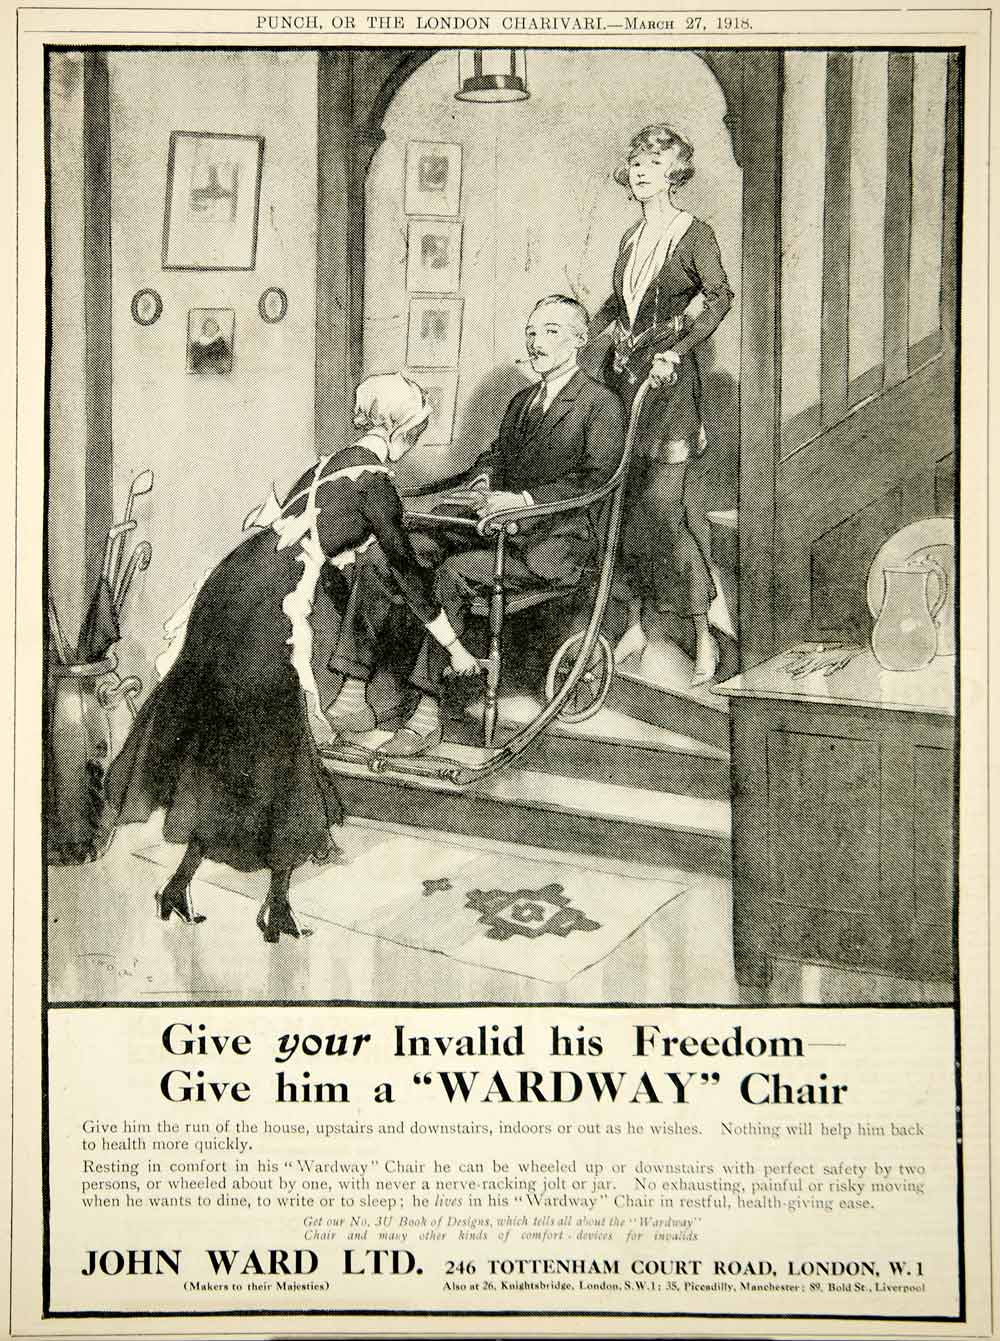 1918 Ad Antique Wardway Invalid Chair Wheelchair Stairs Disabled John Ward Ltd.